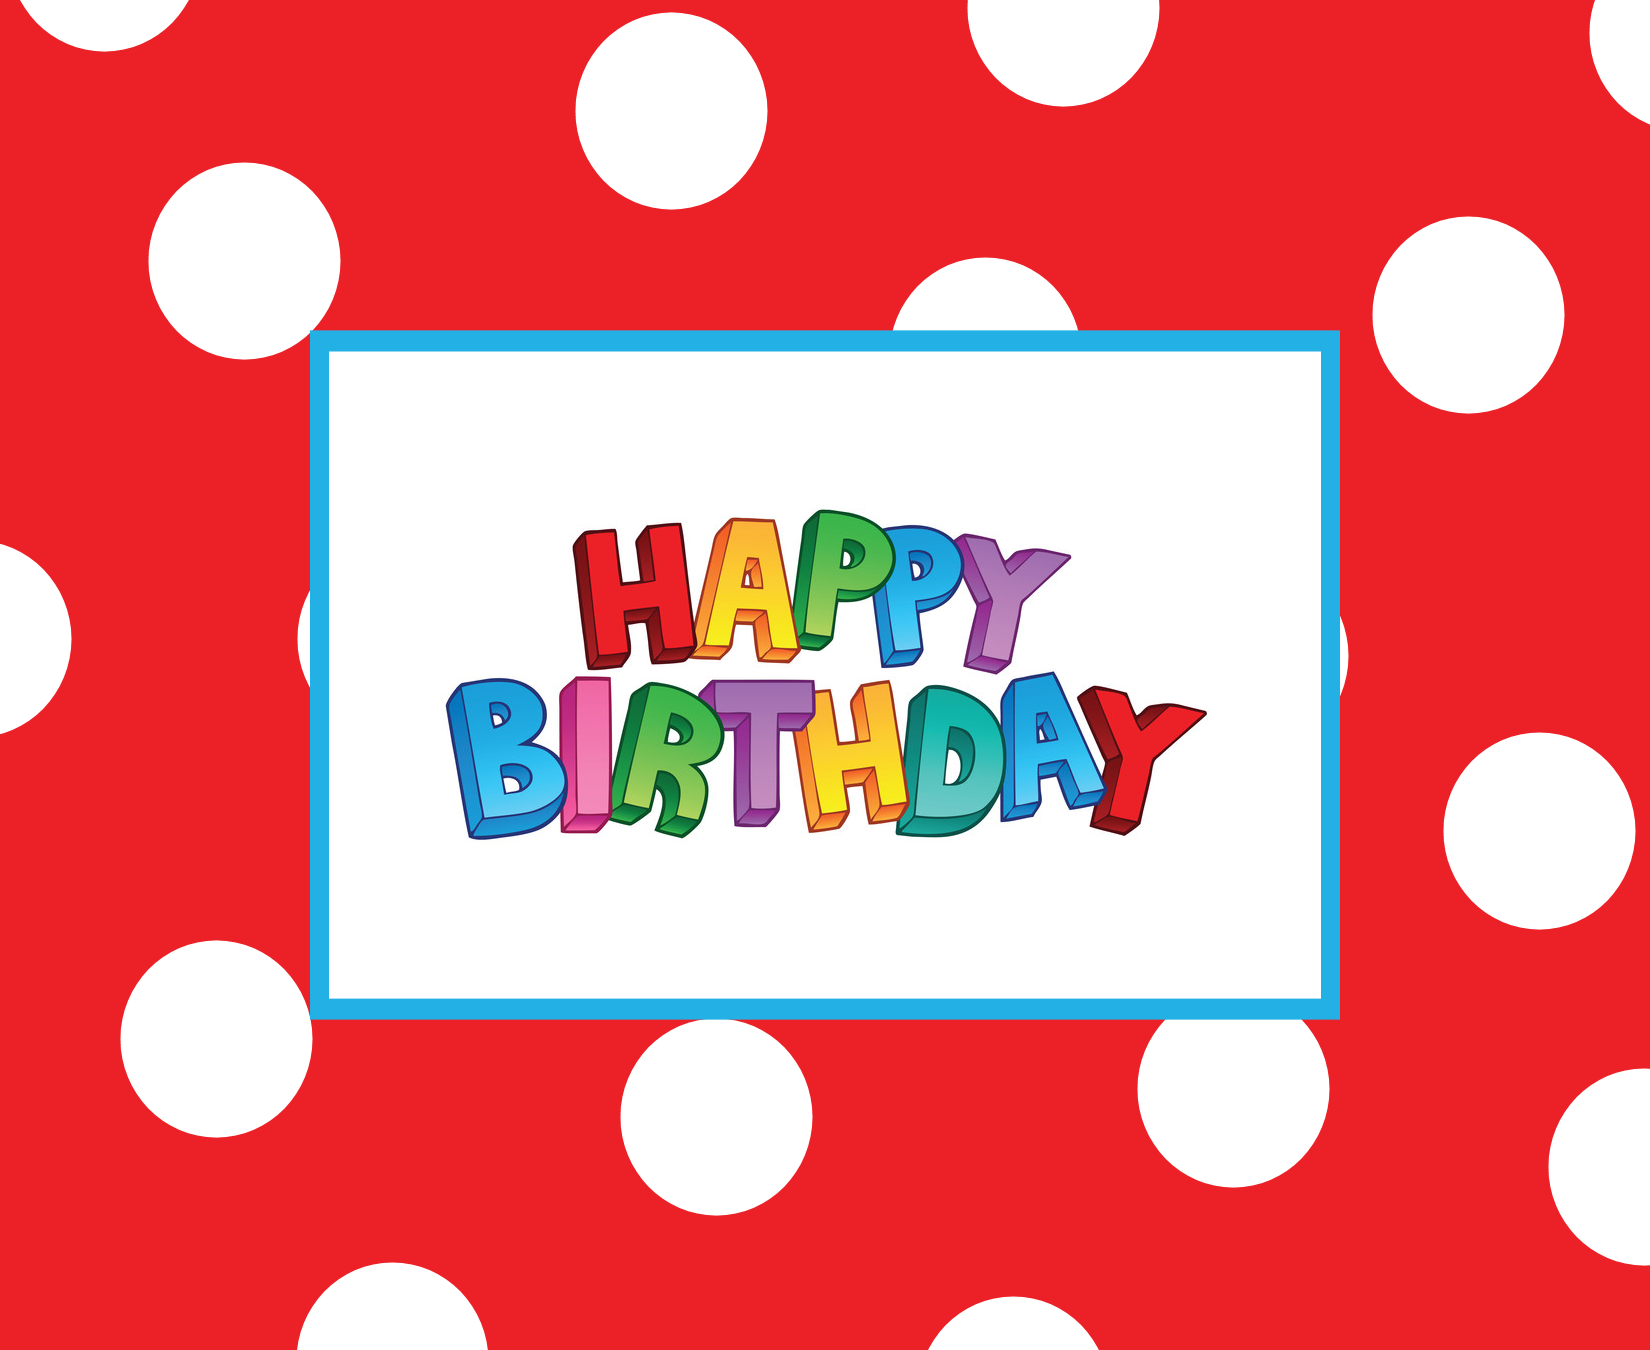 Free Printable Happy Birthday Cards gangcraftnet – Free Template Birthday Card